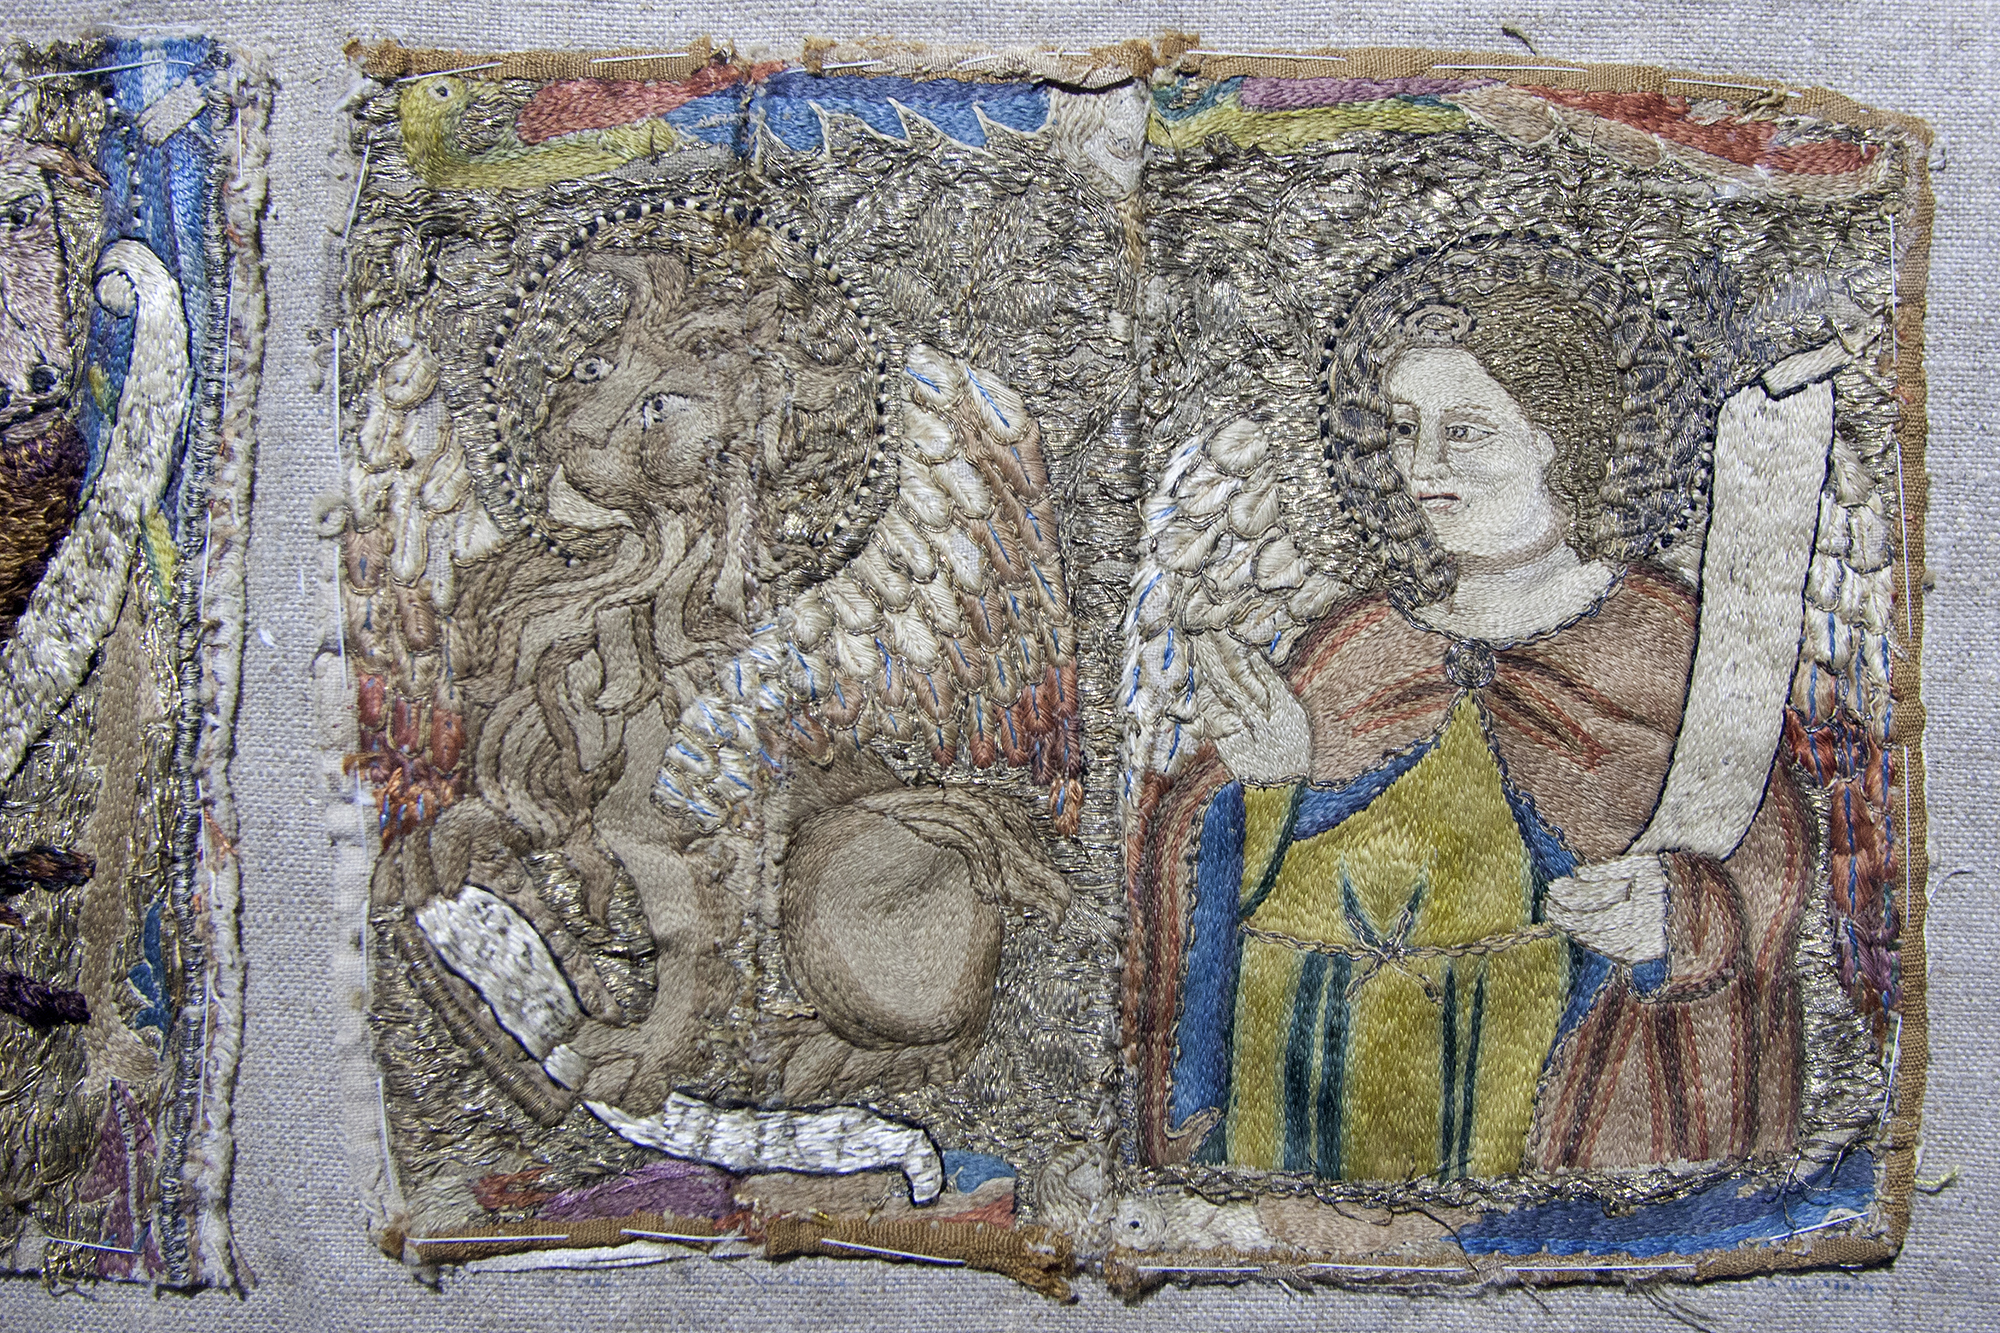 Embroidery from the cloister exhibition